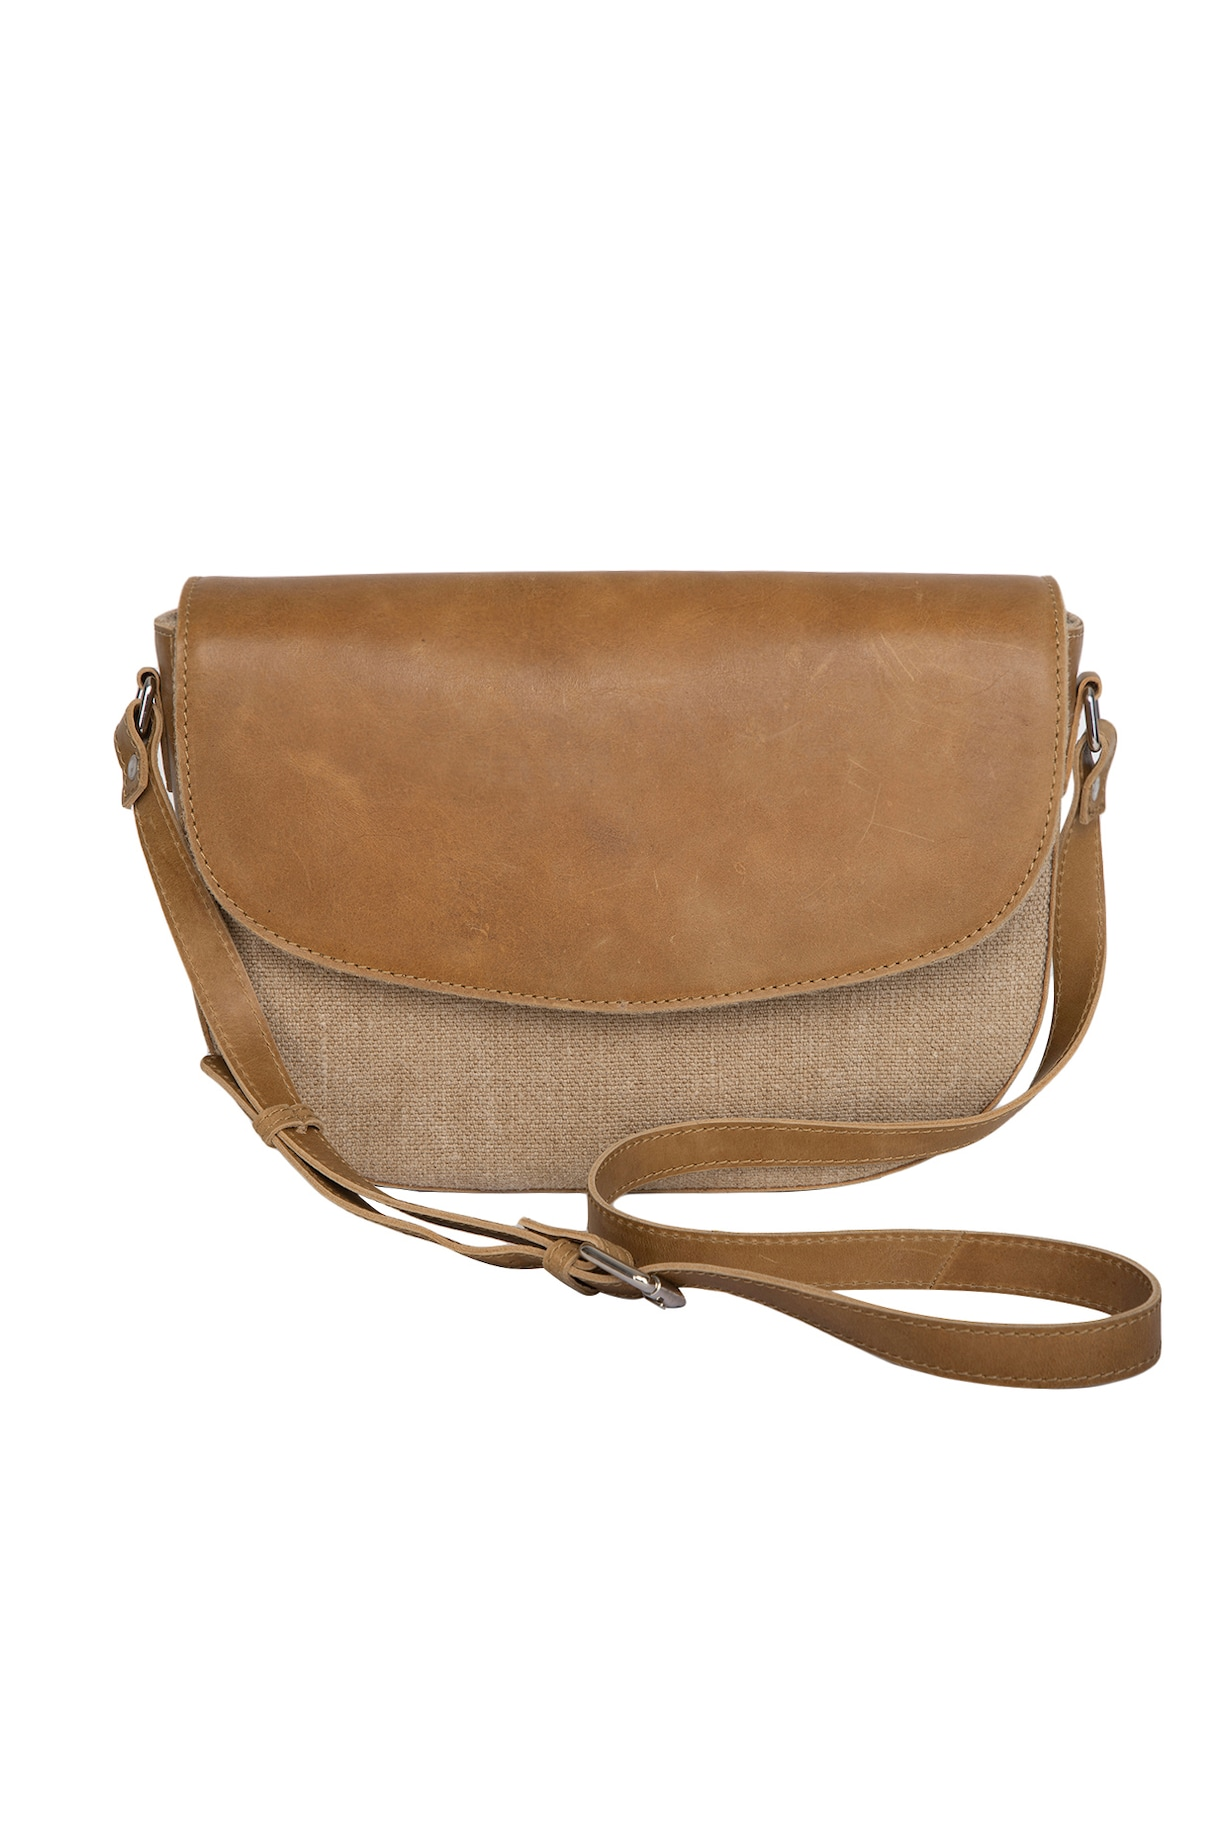 The House of Ganges Bags